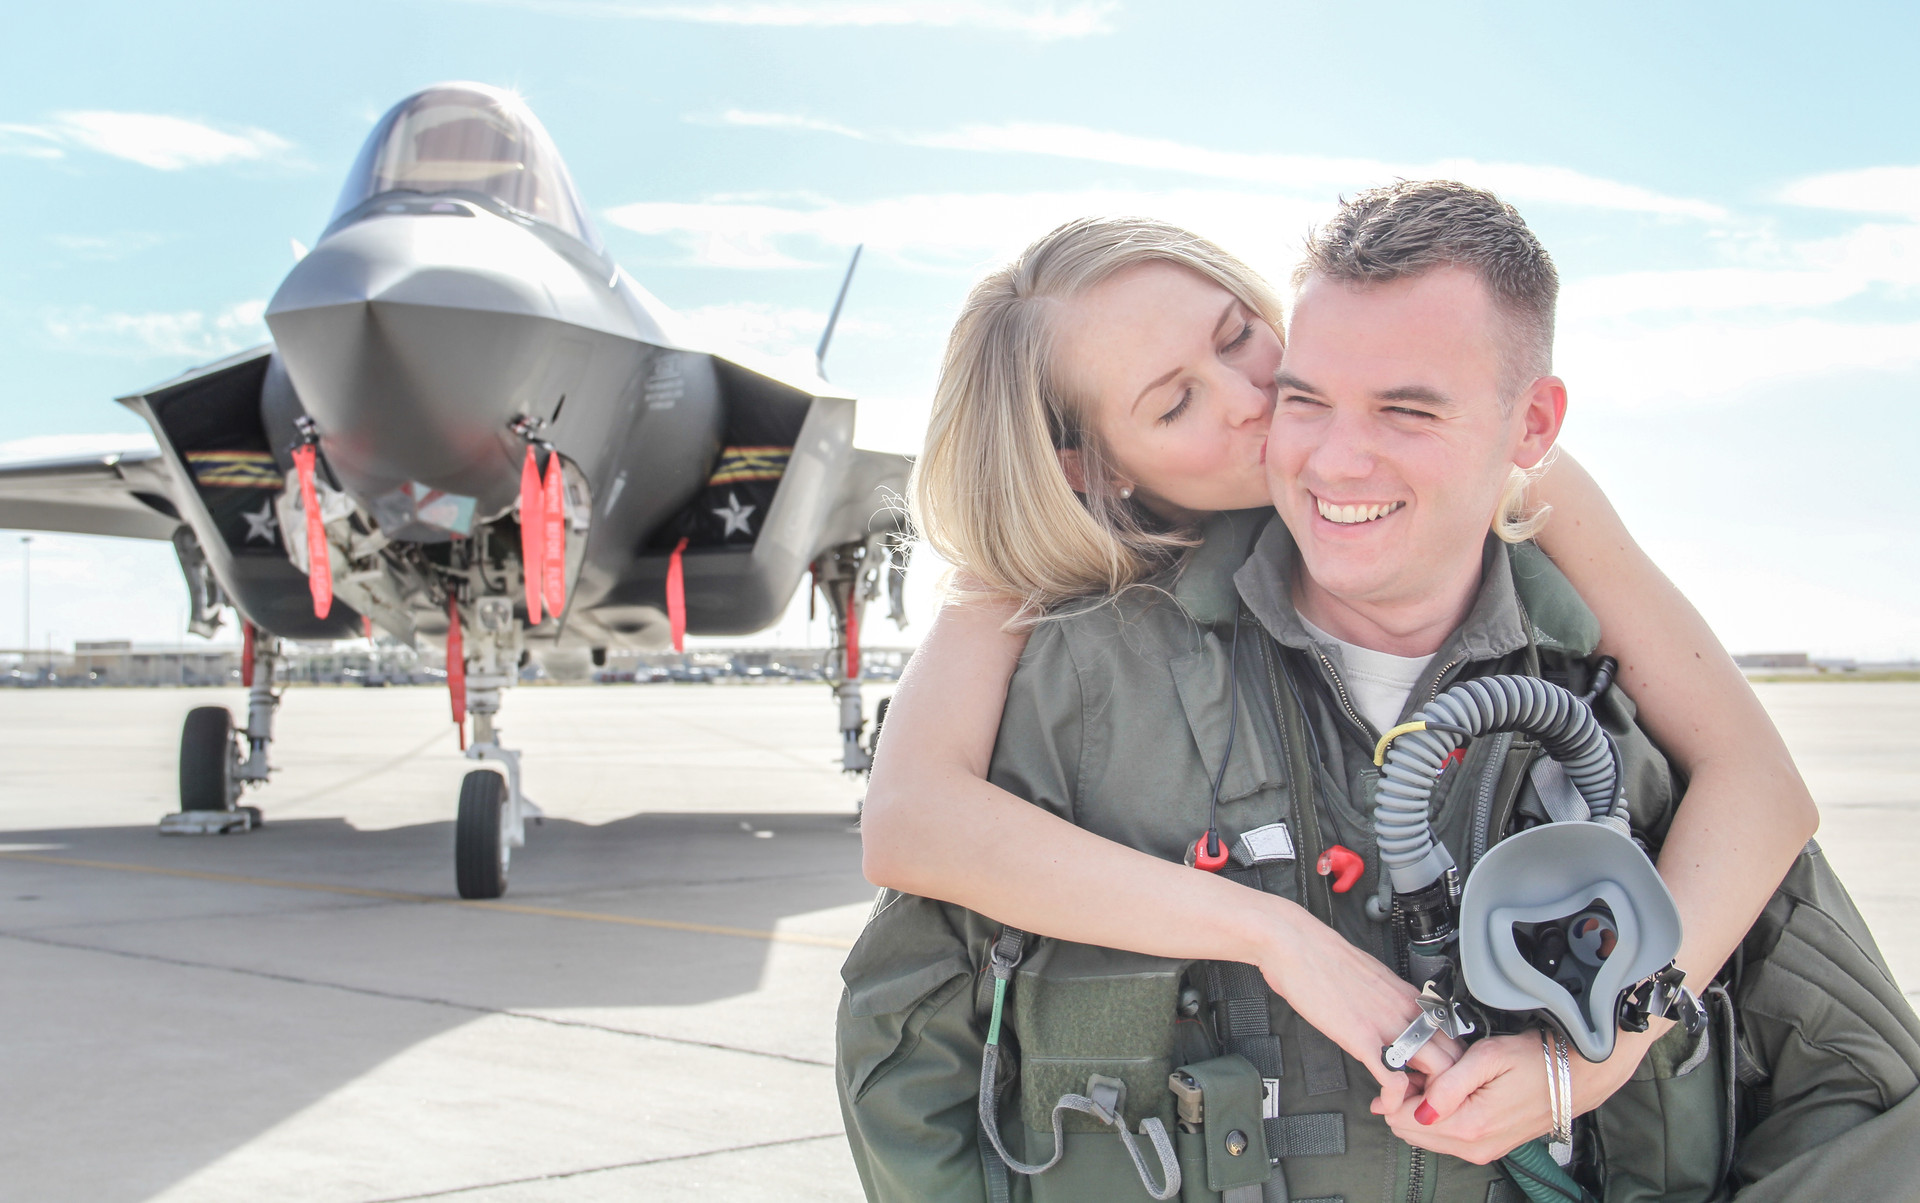 Davis Monthan AFB, Luke AFB, AIR FORCE, marines, navy, aviation, Military, Jets, F-35, F-16, Thunderbirds, vintage photoshoot, Military Homecoming, Photography, Tucson Photography, www.KimberlyBillingtonPhotography.com, Military life, Military Famlies, Childrens Photography, Portrait Photography, Senior Pictures, Arizona, Tucson  Portrait photography, military photography, military homecoming, senior pictures, engagement session, engagement photography, couples session, wedding photographer, jet photos, pilot photos, family photography, lifestyle photography, maternity photographer, Tucson Arizona photographer, engagement photographer, military homecoming photography, Military homecoming videography, wedding photographer, arizona photographer,   Kimberly Billington is a photographer in Tucson, Arizona specializing in family, couples and engagement photography, military homecomings, military family photo sessions, squadron aviation family photography, family photography, toddler and children sessions, Birthday photography, event photography, and Military Homecoming videography.  Portrait photography, military photography, military homecoming, senior pictures, engagement session, engagement photography, couples session, wedding photographer, jet photos, pilot photos, family photography, lifestyle photography, maternity photographer, Tucson Arizona photographer, engagement photographer, military homecoming photography, Military homecoming videography, wedding photographer, arizona photographer, Davis Monthan AFB, Luke AFB, AIR FORCE, marines, navy, aviation, Military, Jets, F-35, F-16, Thunderbirds, vintage photoshoot, Military Homecoming, Photography, Tucson Photography, www.KimberlyBillingtonPhotography.com, Military life, Military Famlies, Childrens Photography, Portrait Photography, Senior Pictures, Arizona, Tucson, toddler photography, fine art photography, top arizona photographer top event photographers tucson, love photography, black white photography, aviation